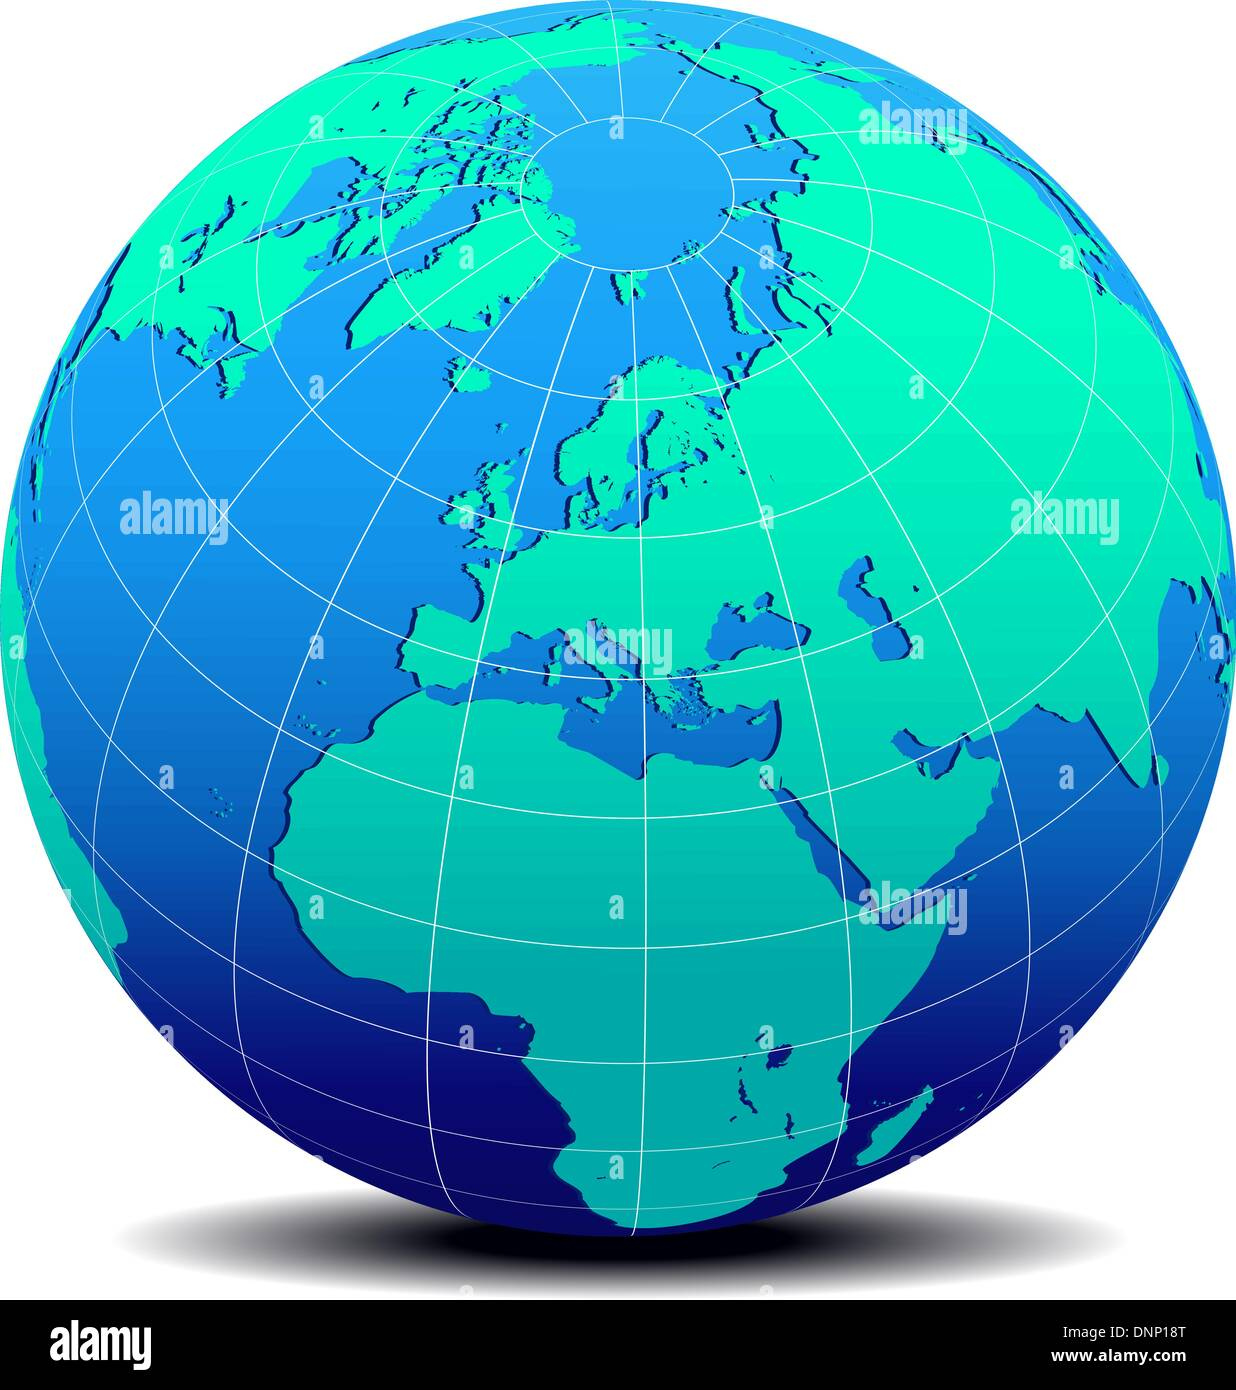 Worksheet. Vector Map Icon of the world in Globe form  Europe  Middle East